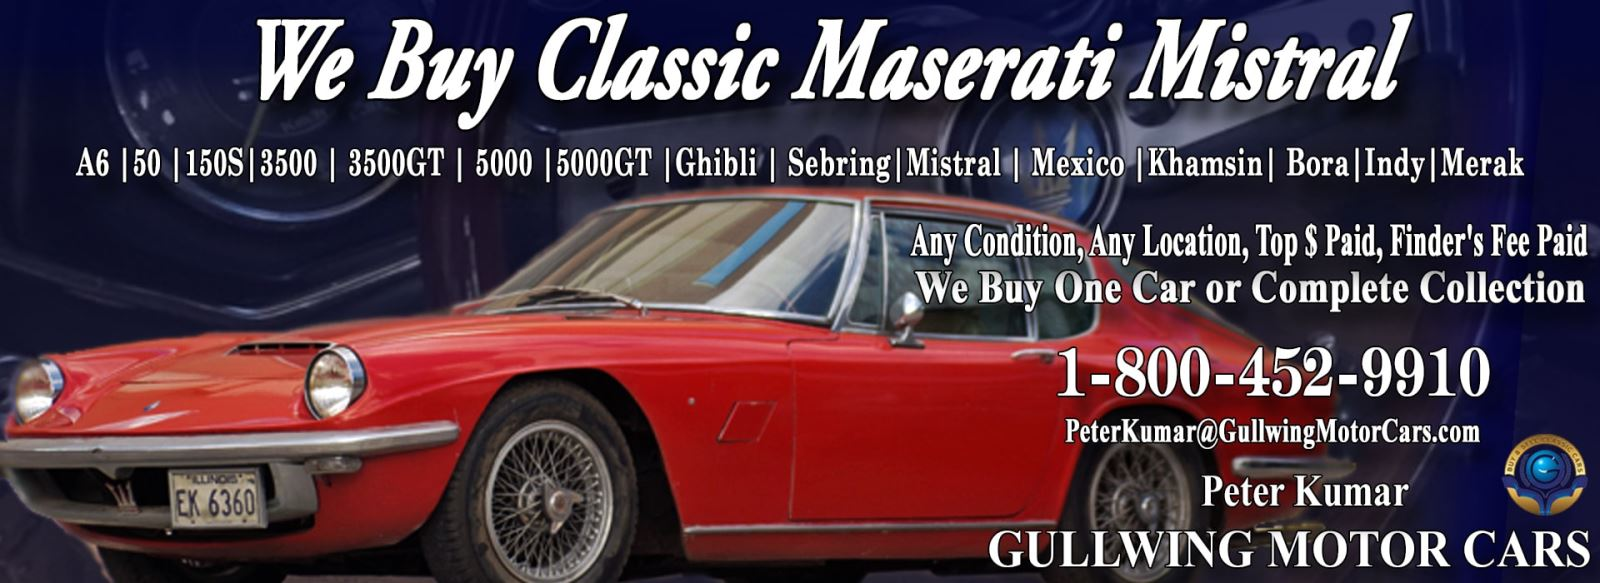 Classic Maserati Mistral for sale, we buy vintage Maserati Mistral. Call Peter Kumar. Gullwing Motor